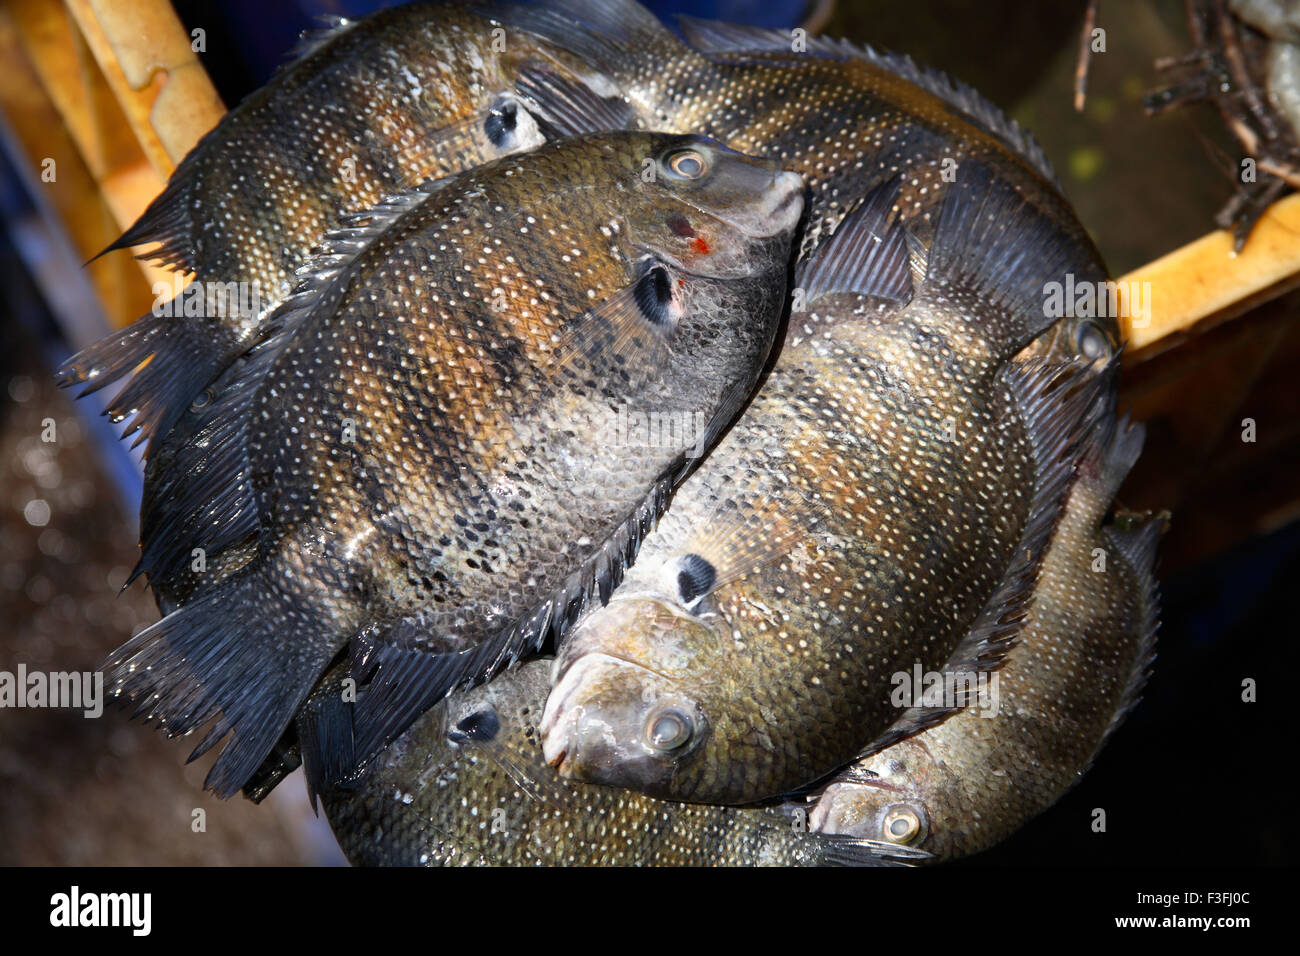 Sweet Water Fish Or Curry Mean Fish River Water Or Fresh